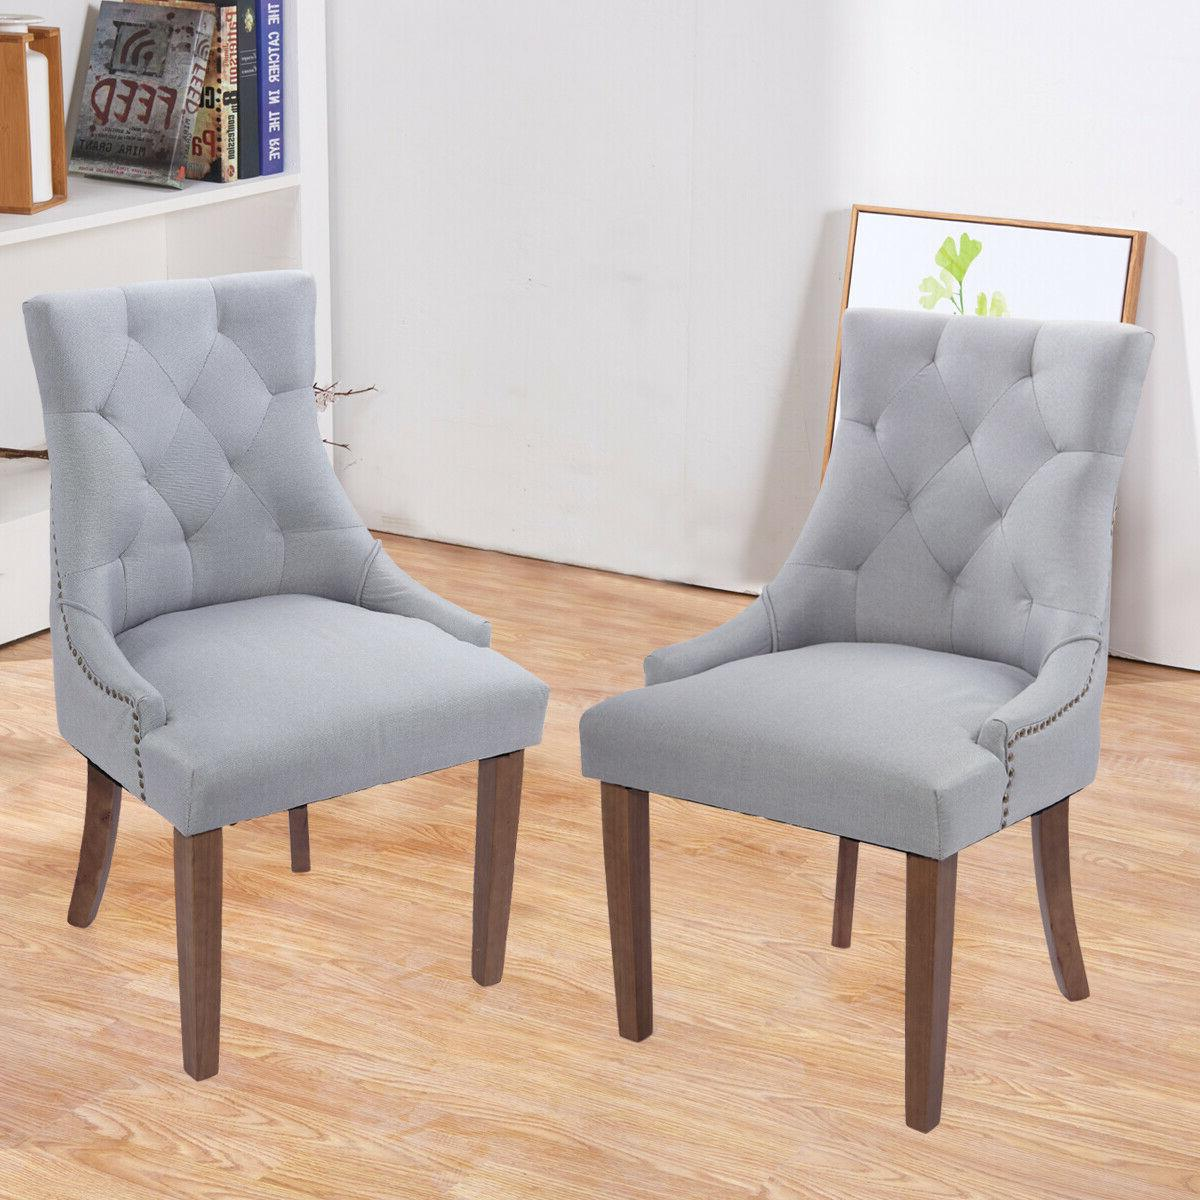 Set Of 2 Tufted Dining Chairs Accent Chairs